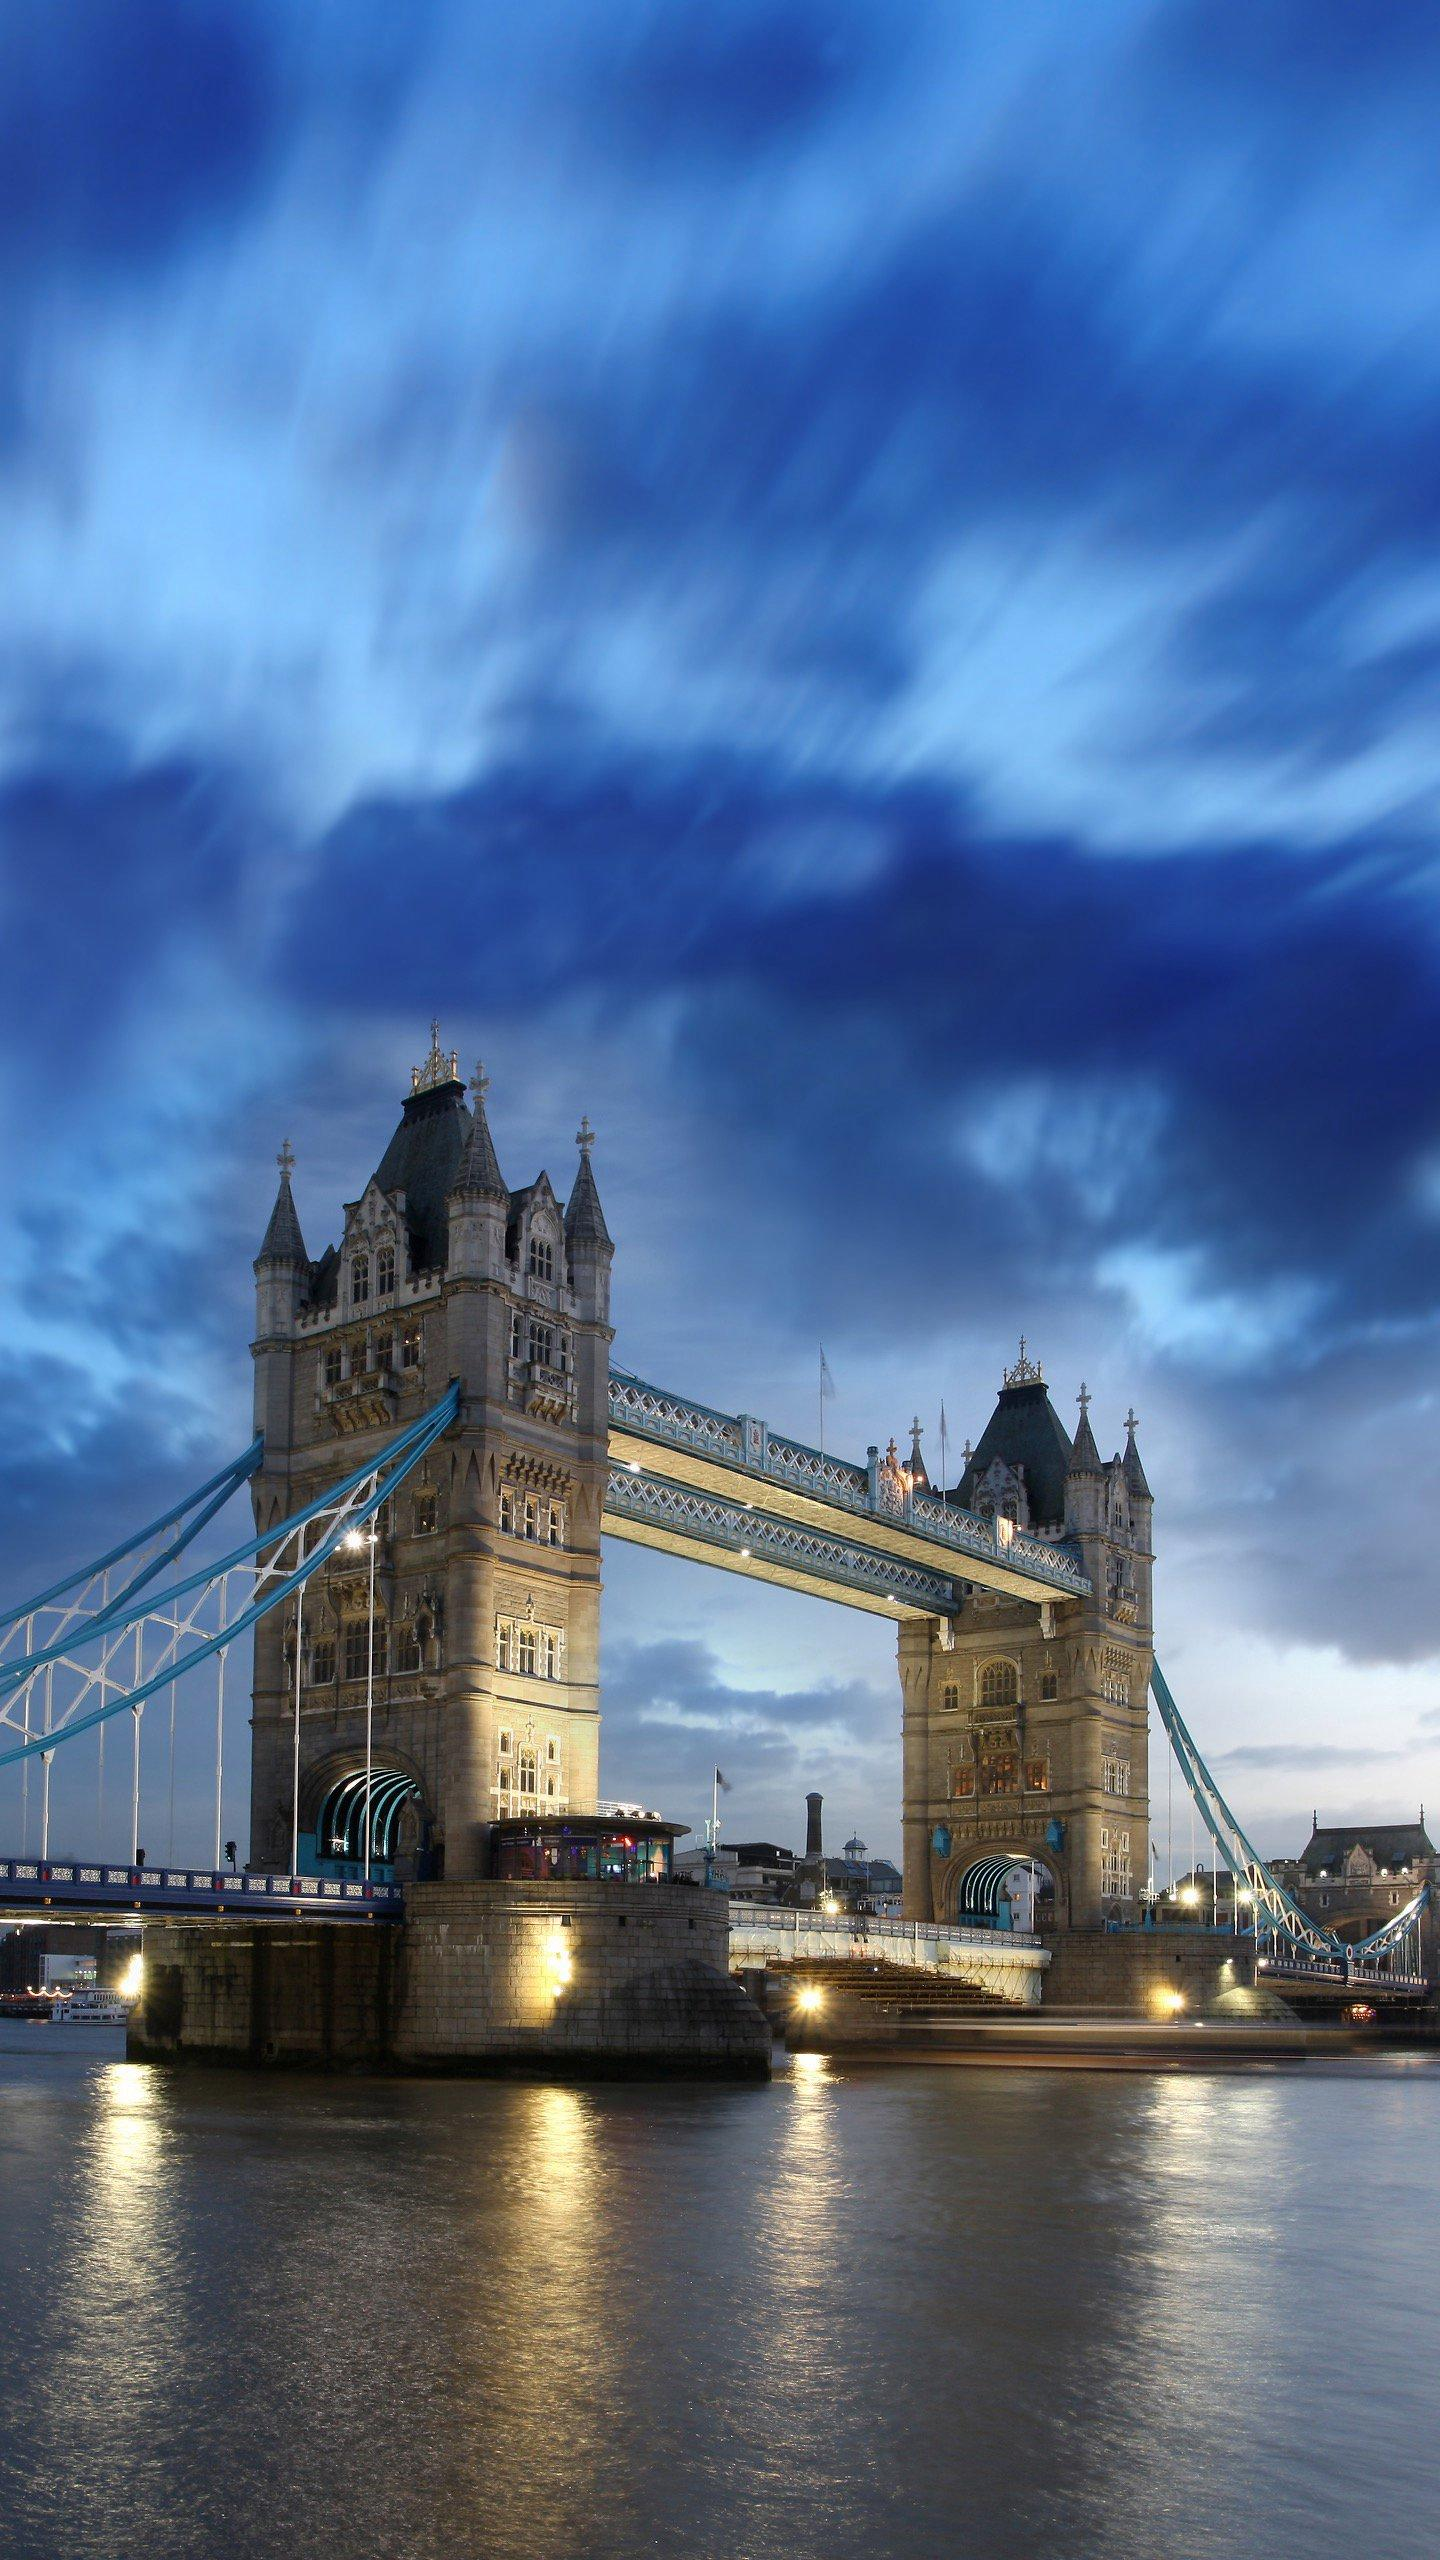 Fly to London for travel. London is a city of perfect blend of history and modern architecture, perfect for travel all year round.